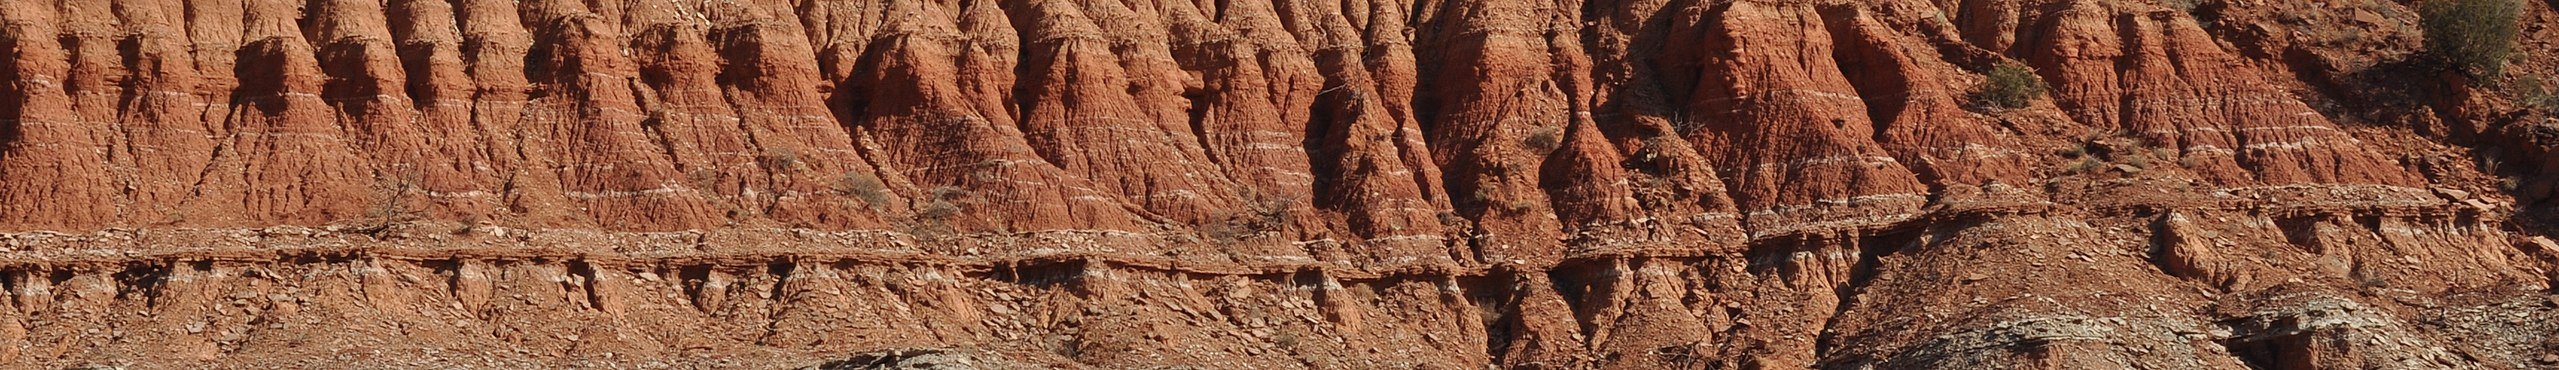 Caprock Canyons State Park Travel Guide At Wikivoyage